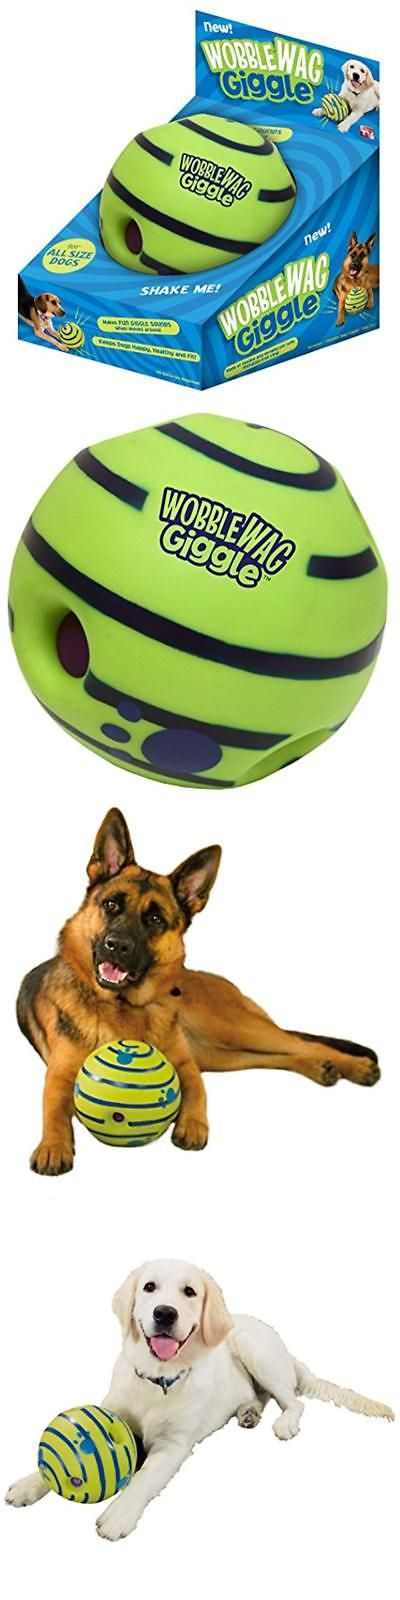 Toys 177791 Wobble Wag Giggle Ball Dog Toy As Seen On Tv Buy